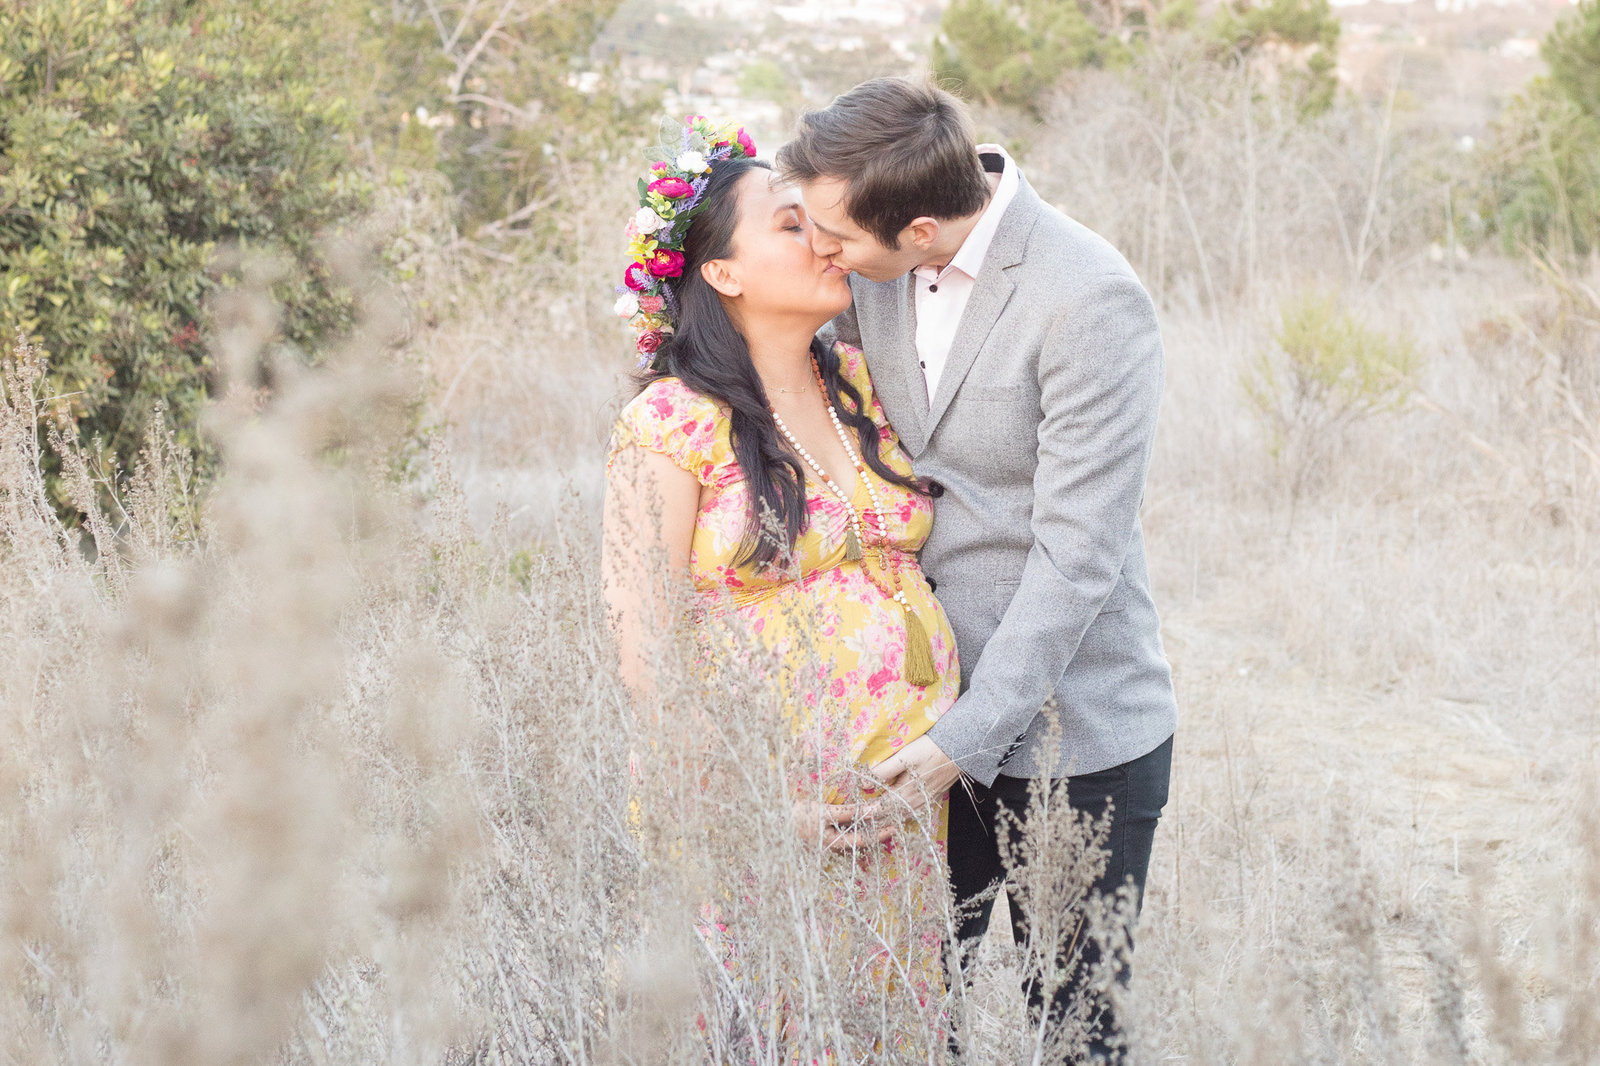 Andrea and Ryan kissing in the middle of the field during their maternity session at Kenneth  Hahn State Park